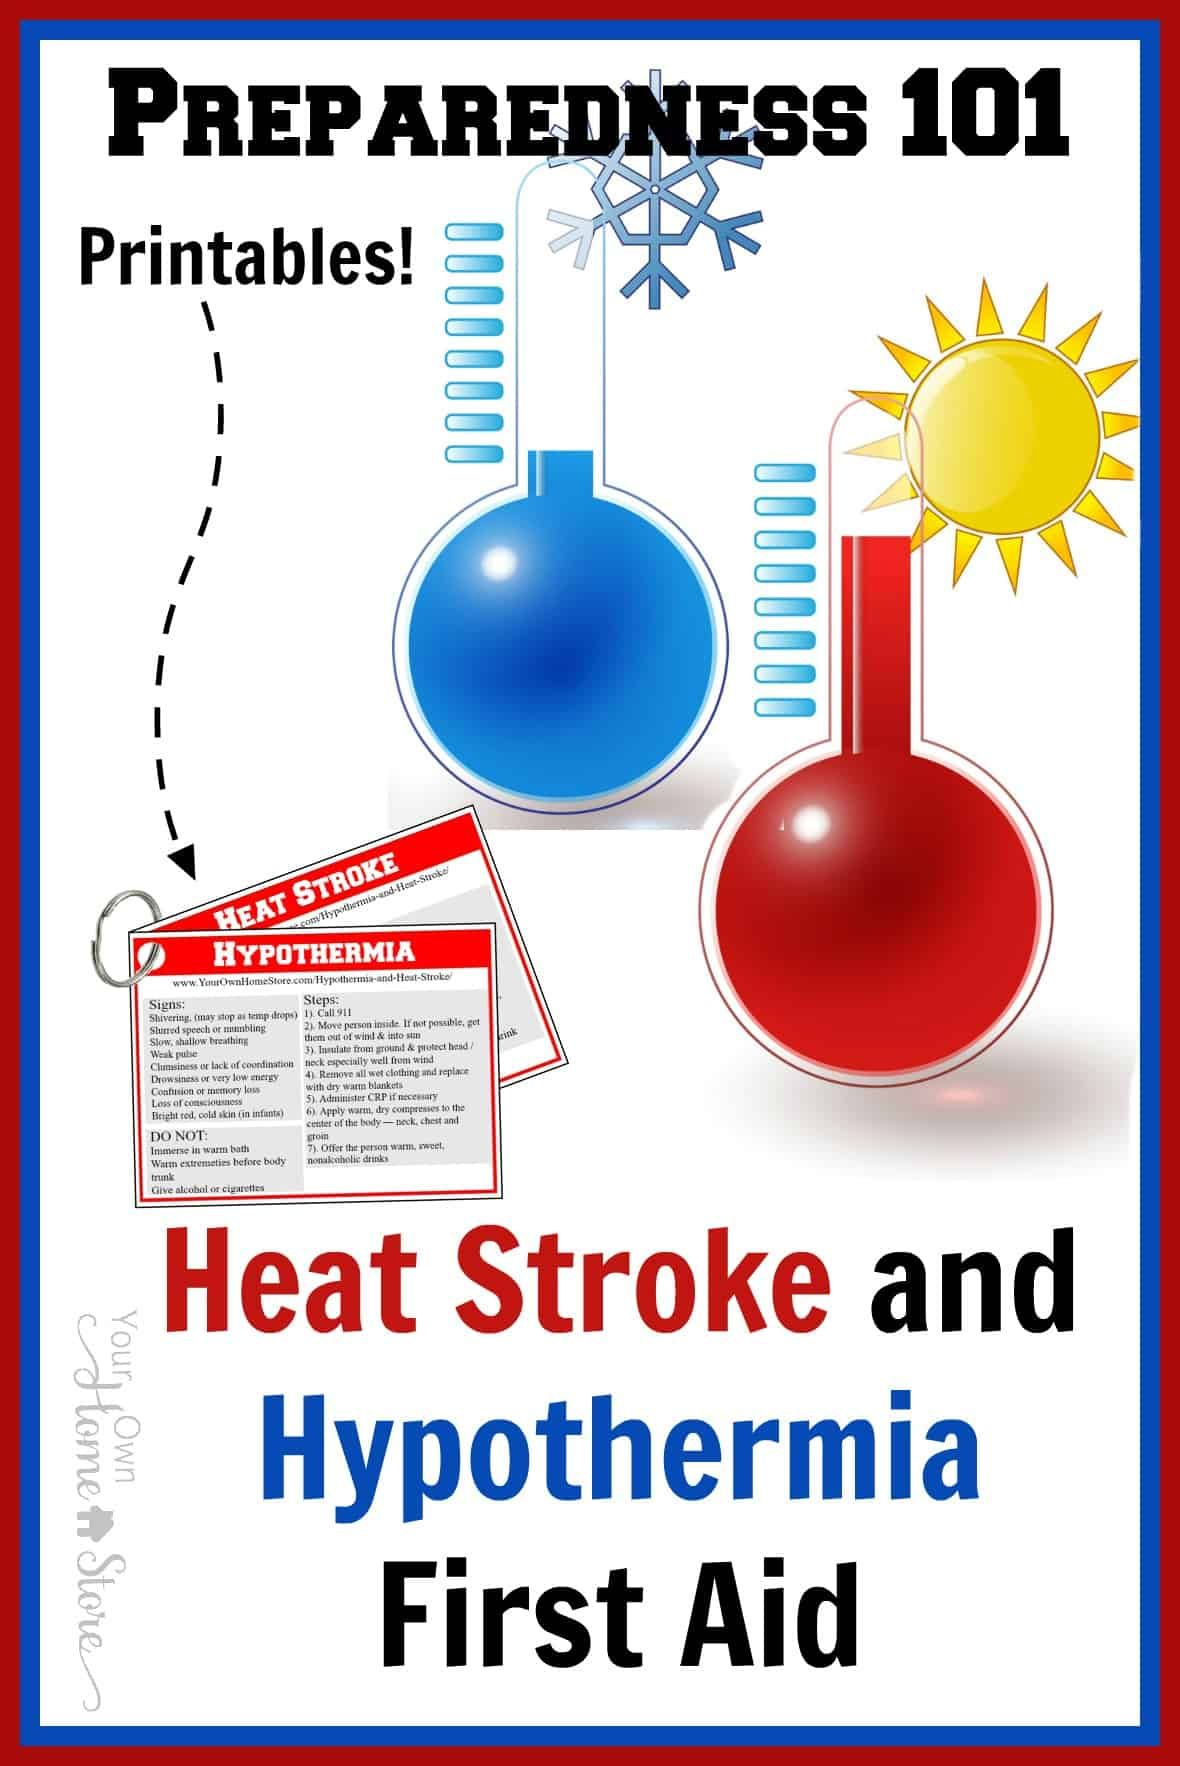 Basic First Aid For Hypothermia and Heat Stroke | Simple Family Preparedness